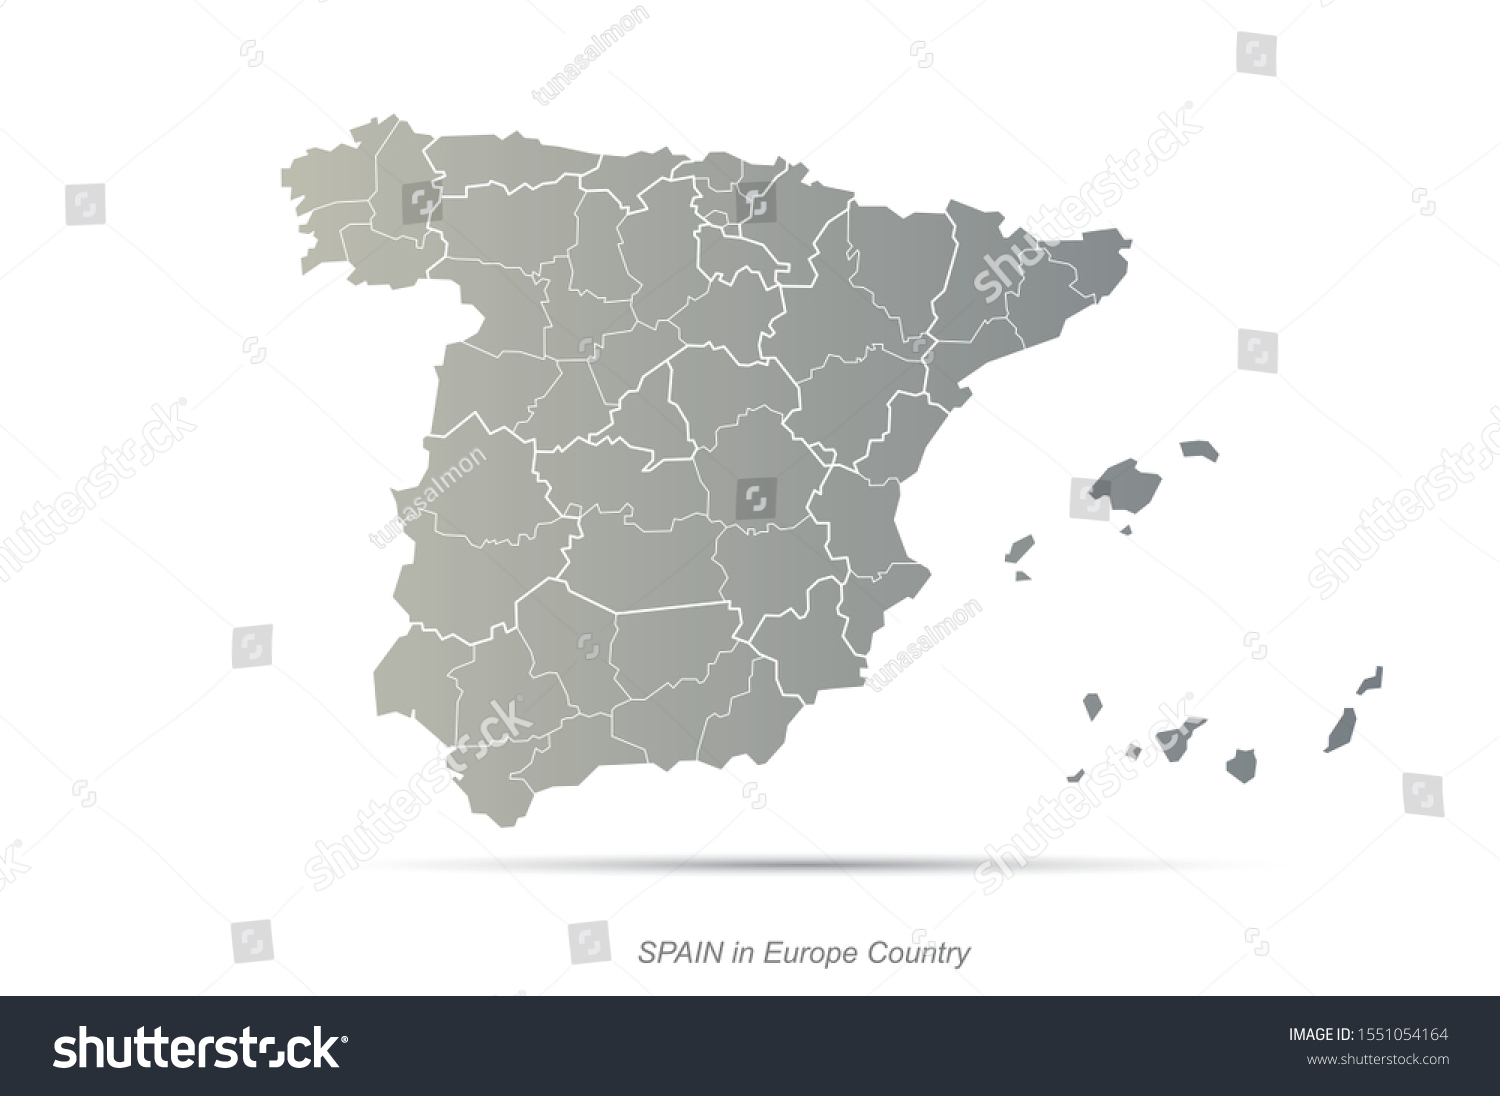 Picture of: Graphic Vector Spain Map Europe Country Stock Vector Royalty Free 1551054164